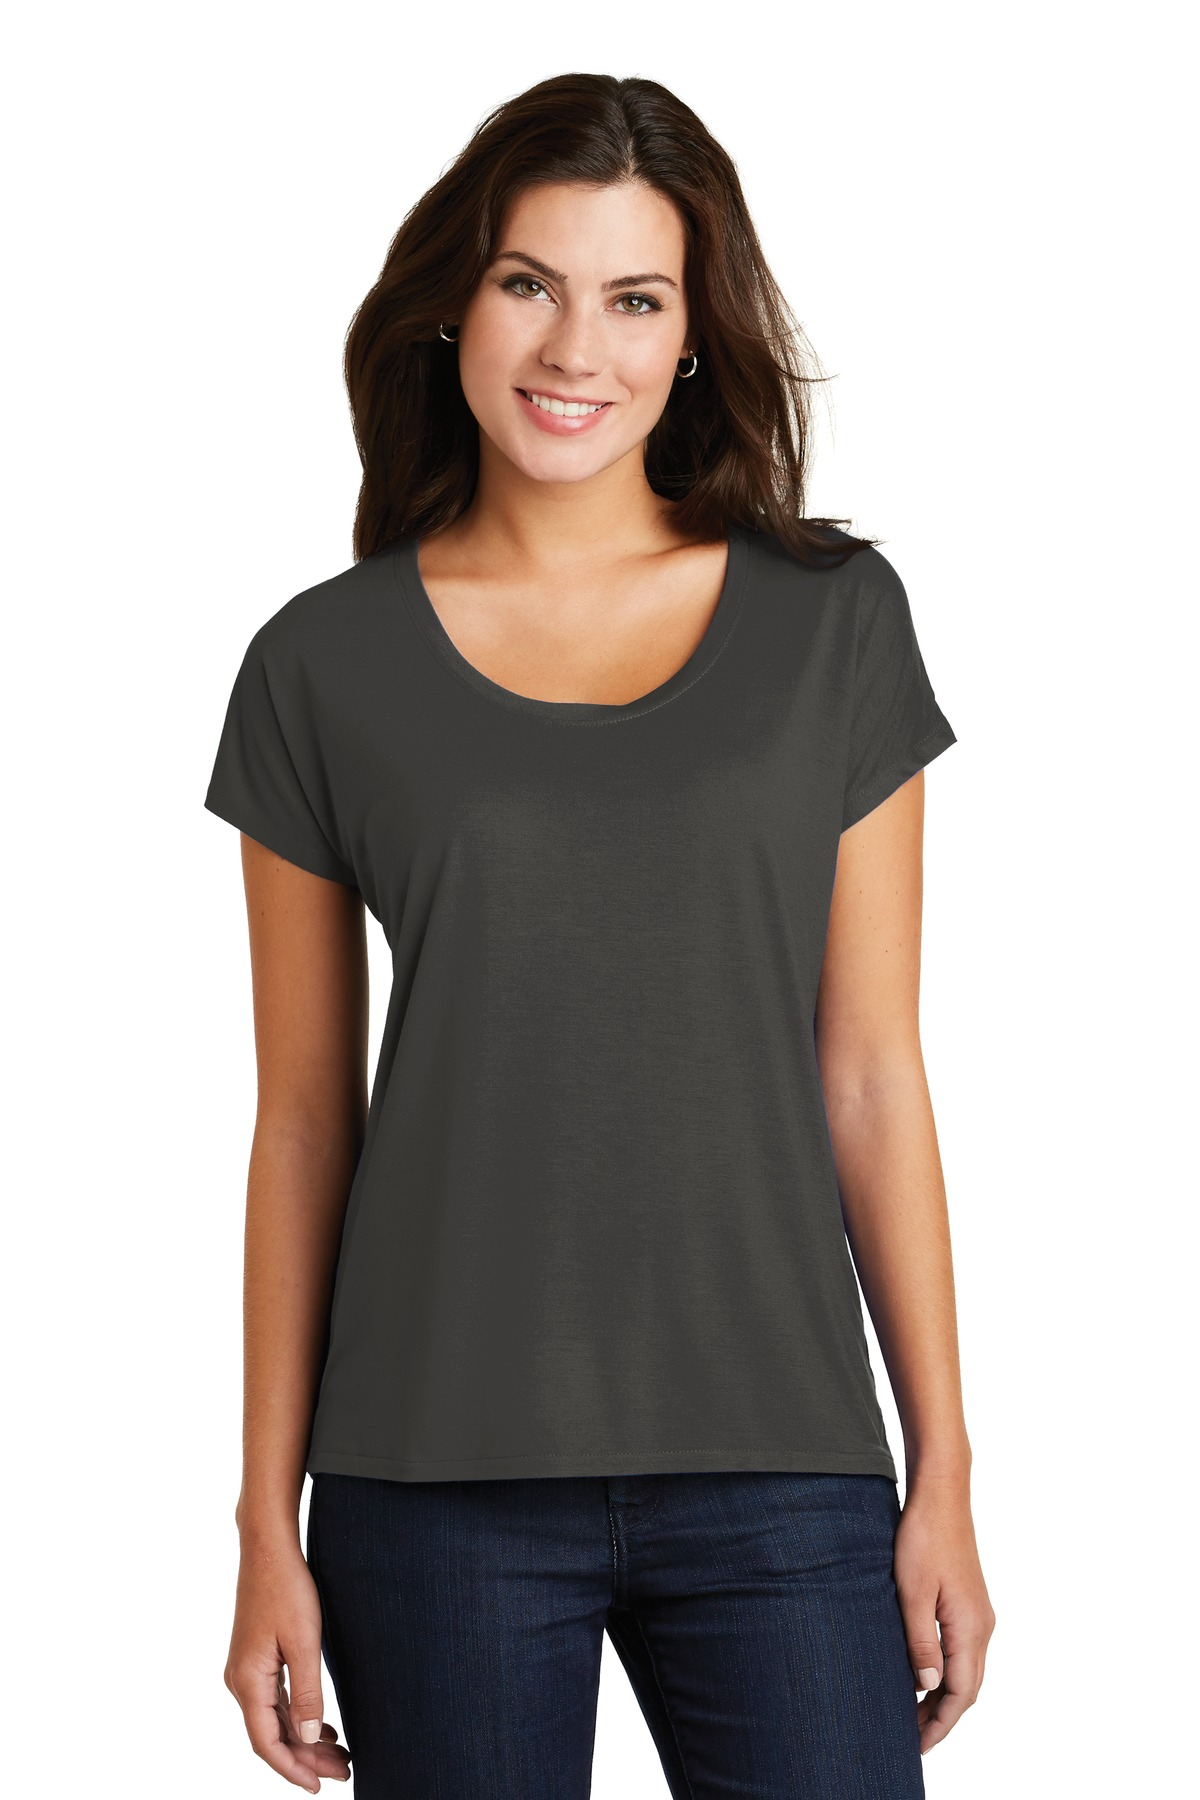 District  ®  Women's Drapey Dolman Tee. DM412 - Charcoal